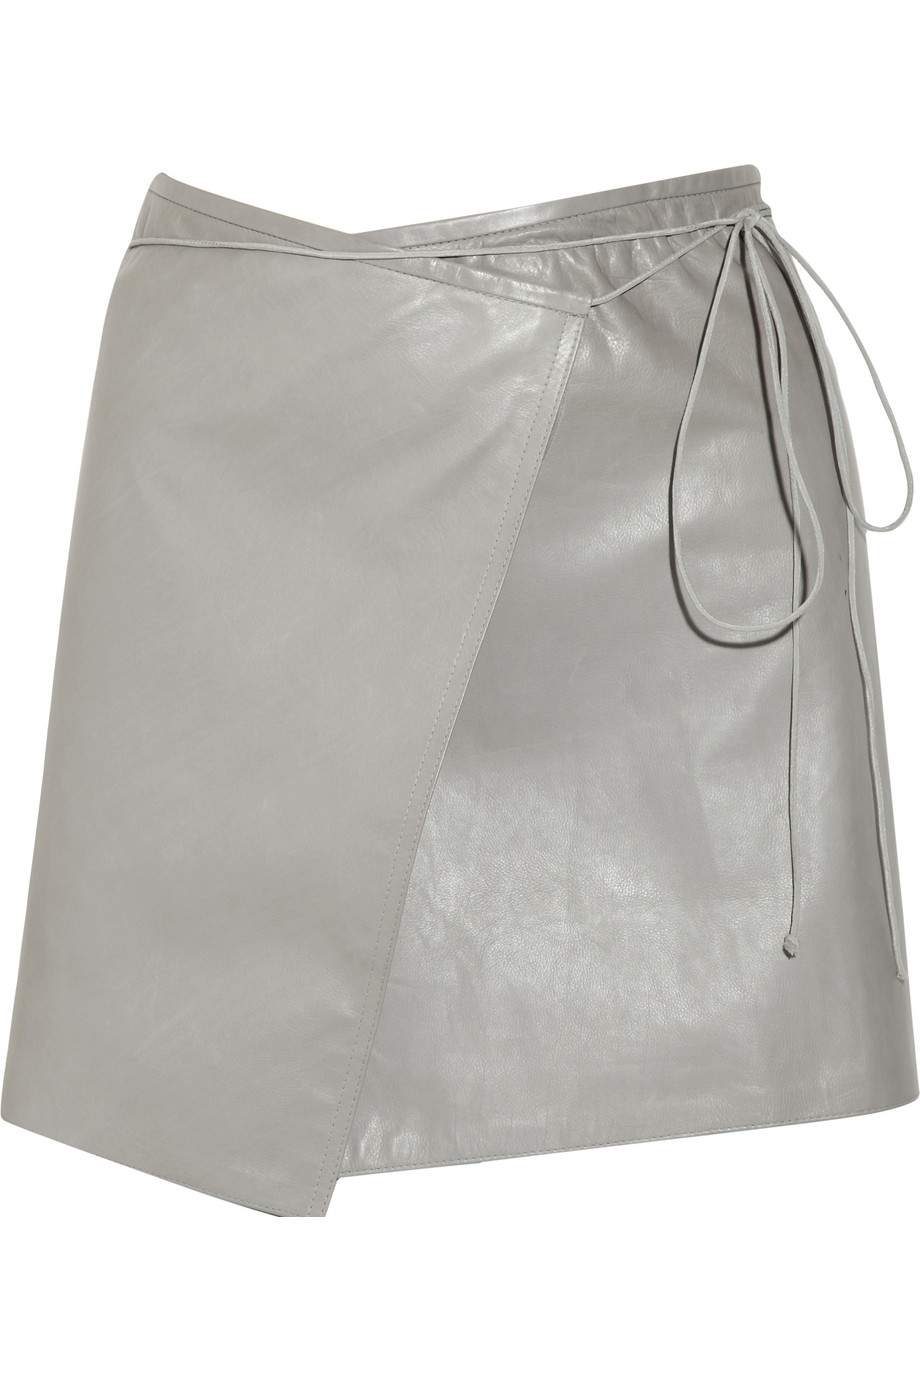 Reed krakoff Leather Wrap Mini Skirt in Gray | Lyst